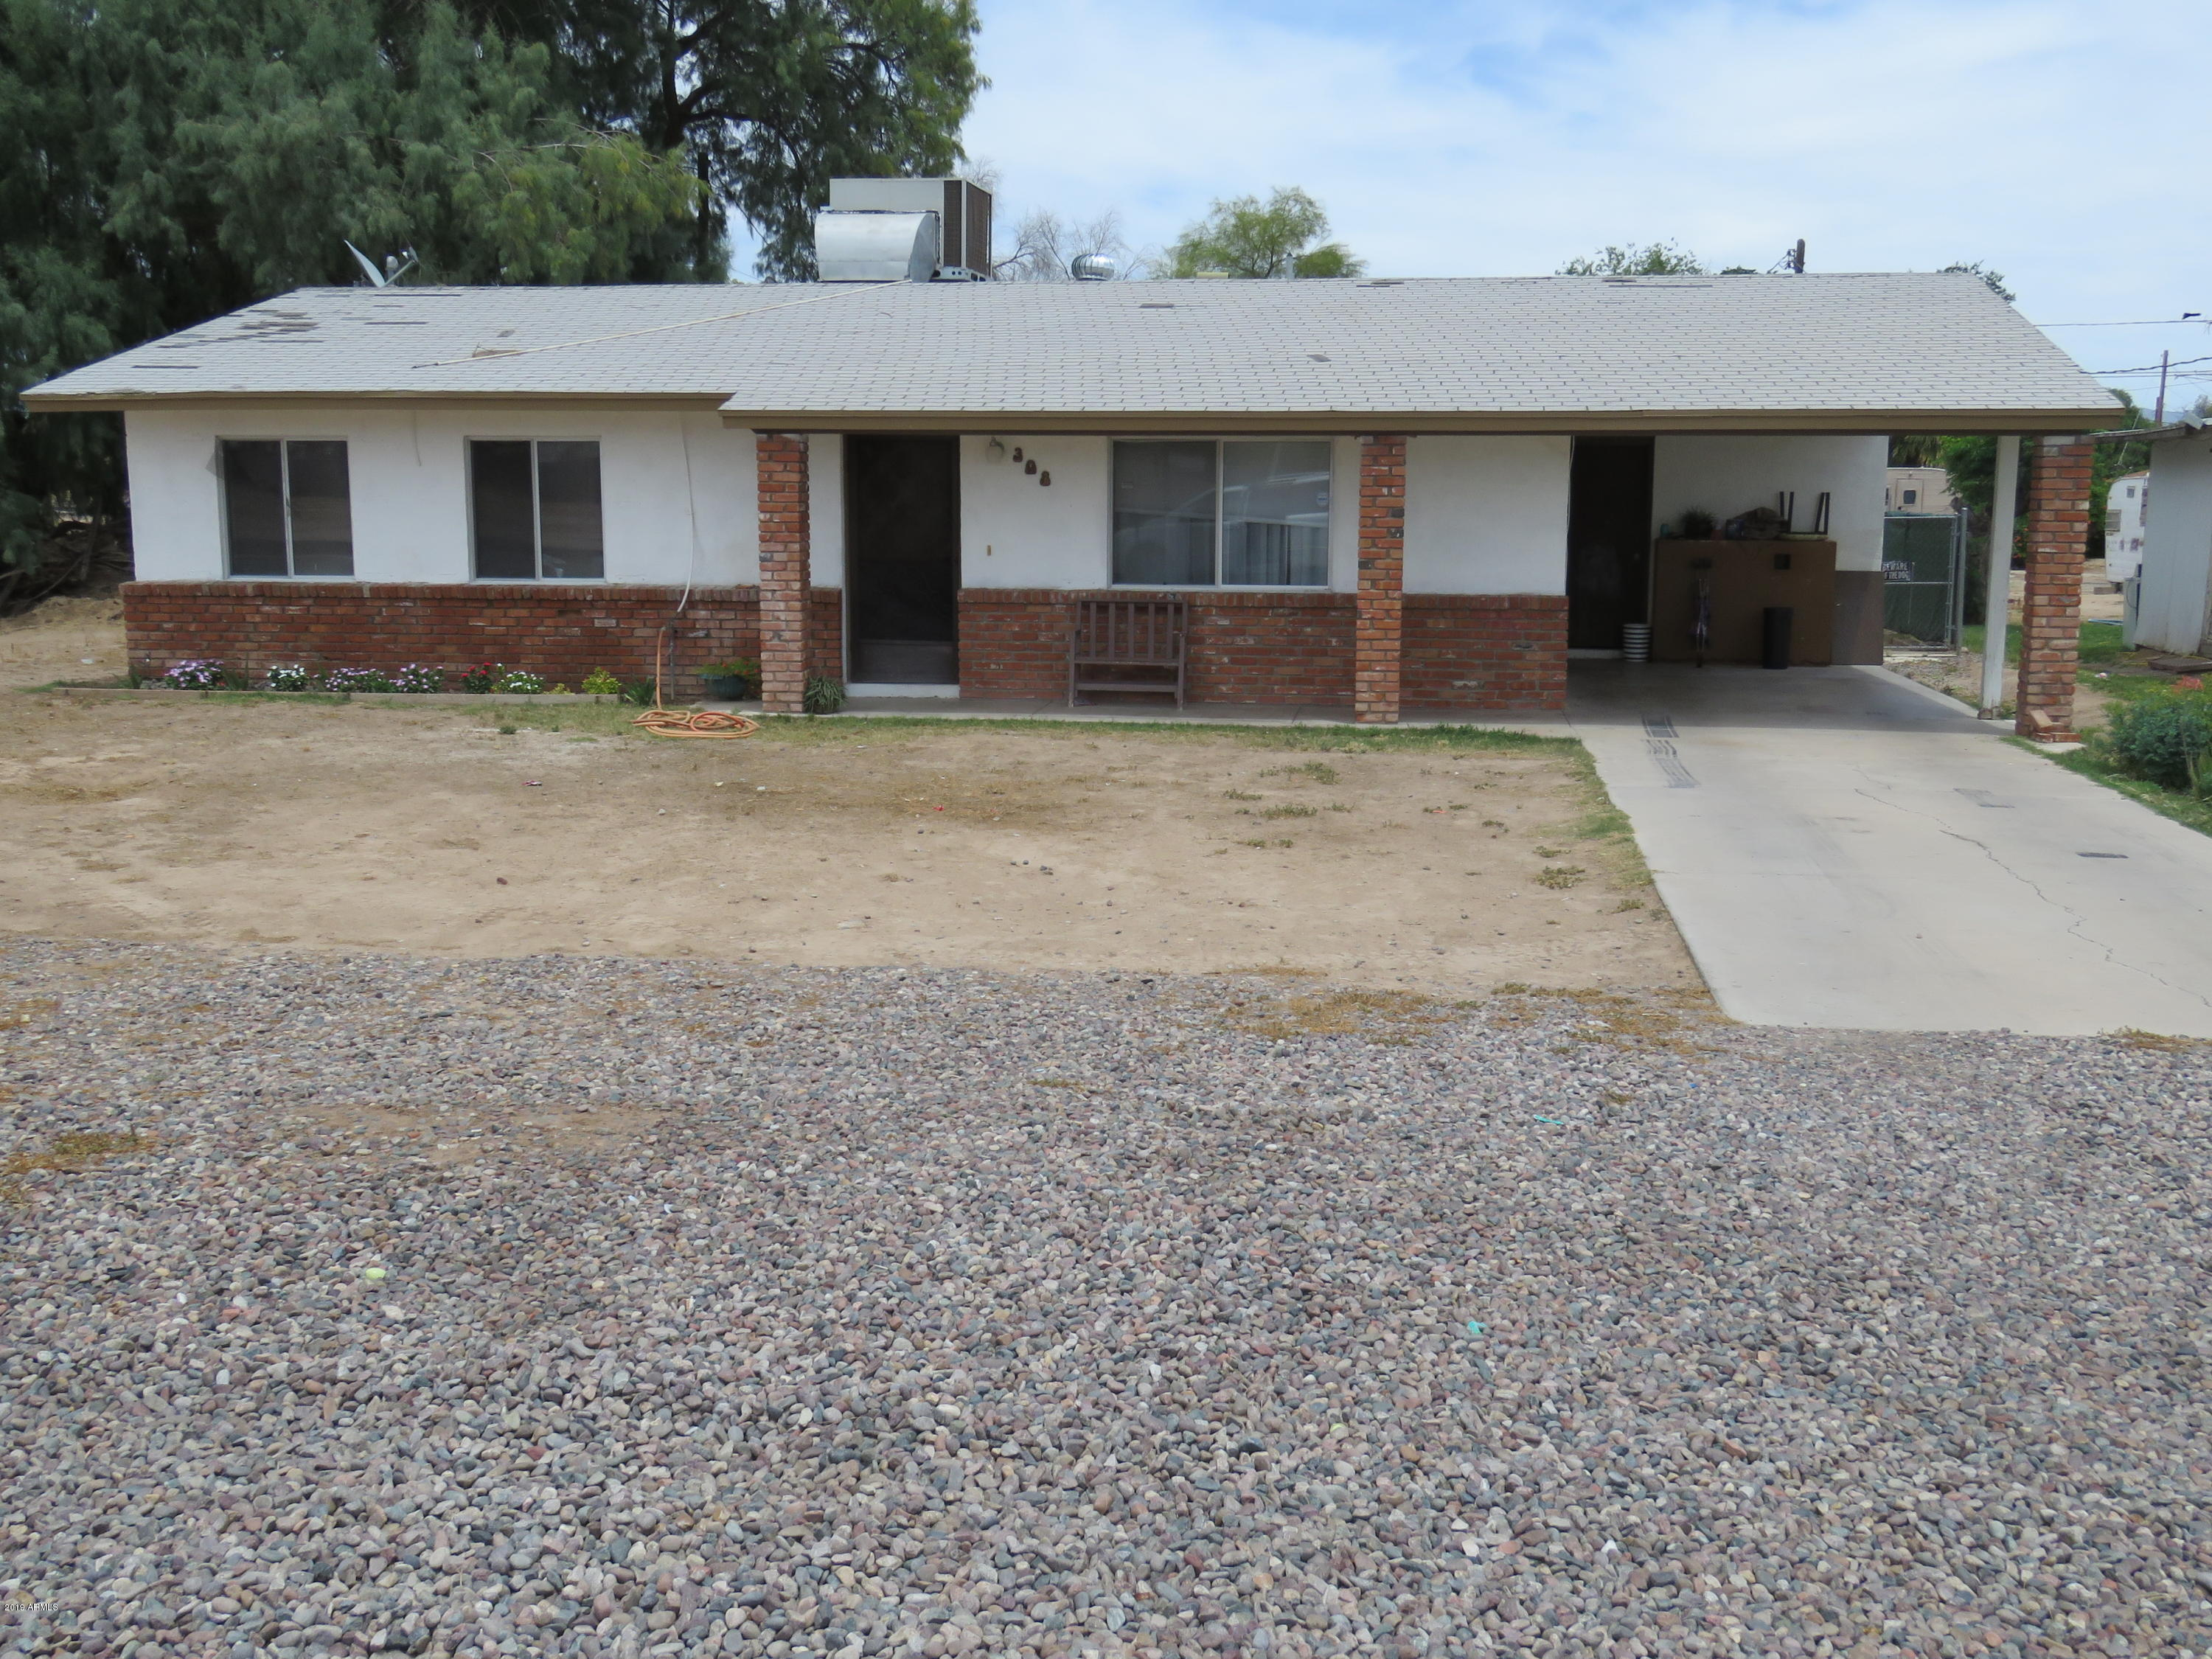 Photo of 308 S 3RD Street, Buckeye, AZ 85326